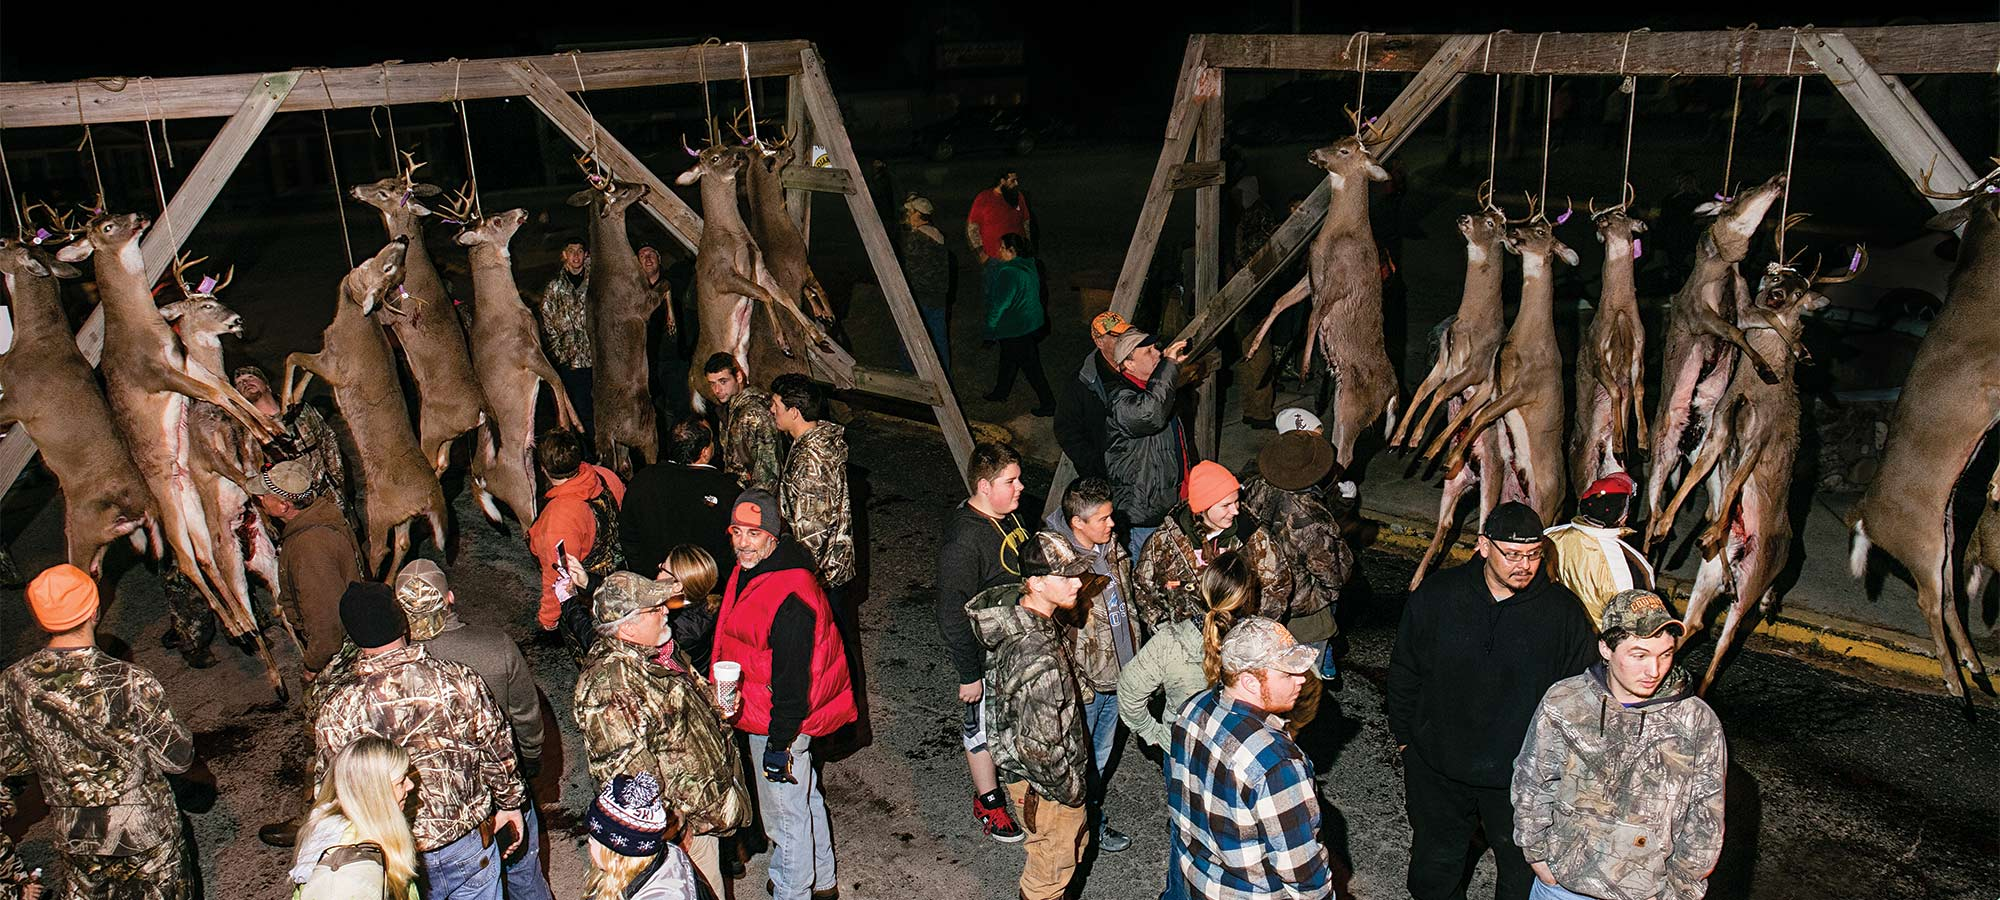 The Buck Pole gathering in Indian River